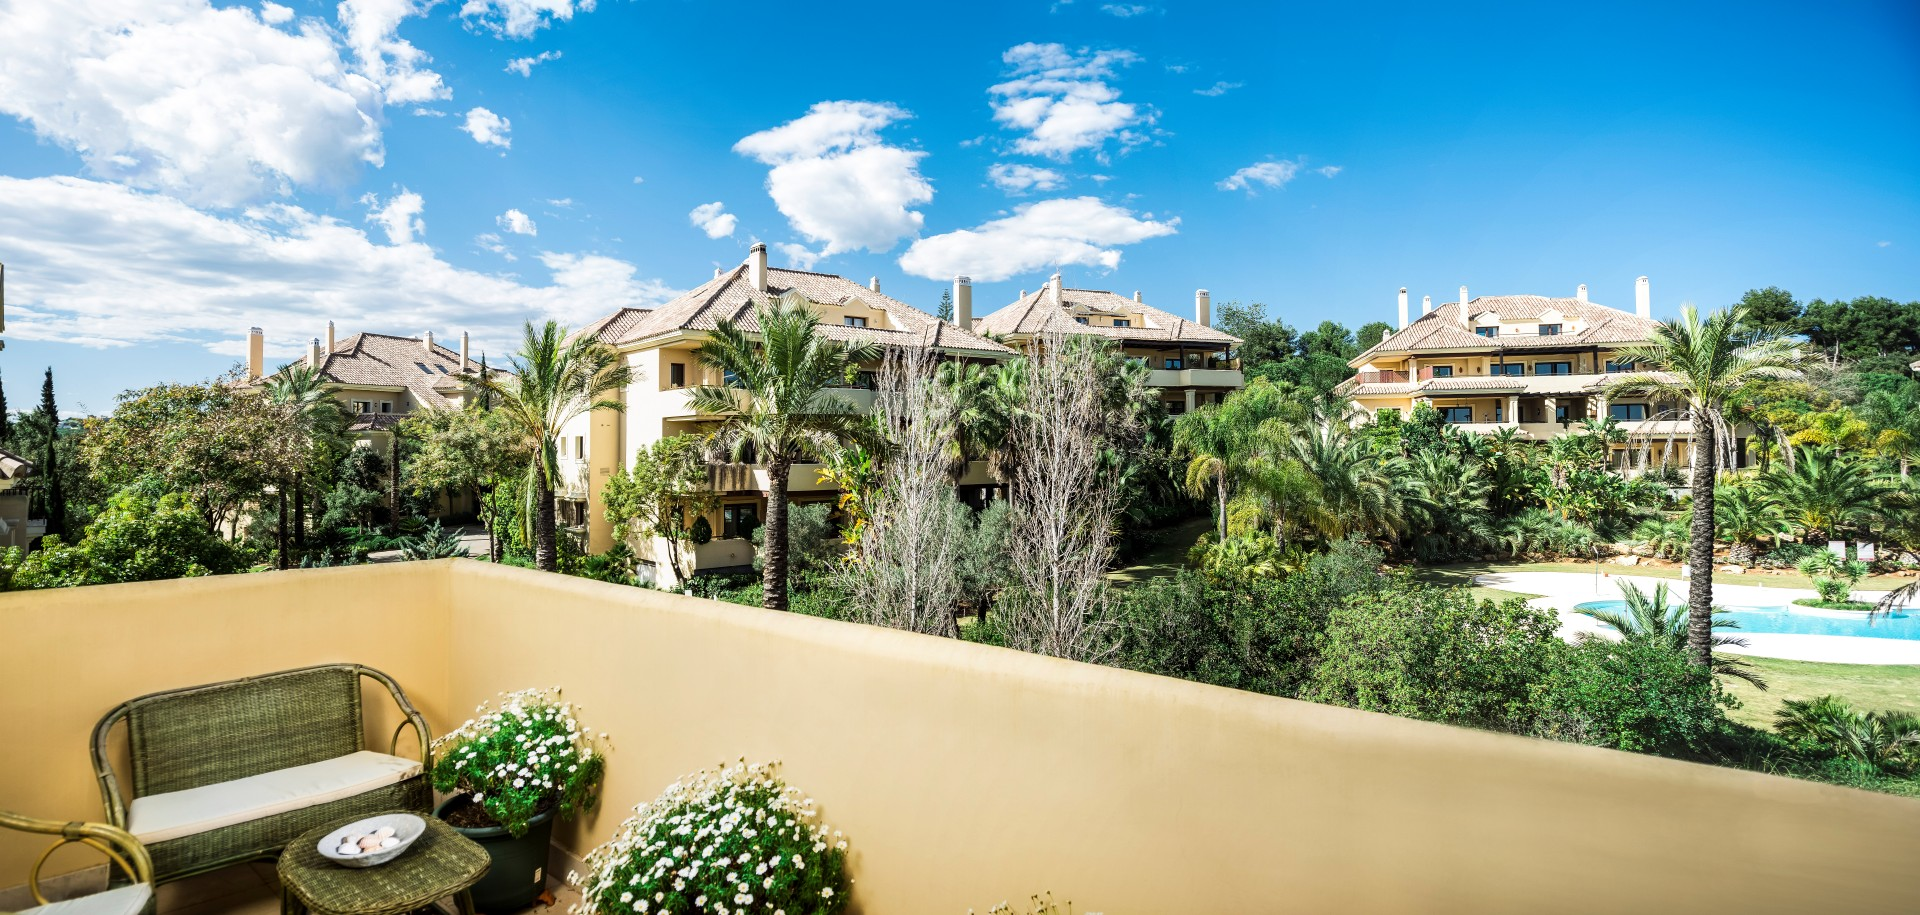 Single Family Home for Sale at Beautiful Duplex Penthouse 11310 Sotogrande (Valgrande), Cadiz (Spain) Other Spain, Other Areas In Spain, 11310 Spain